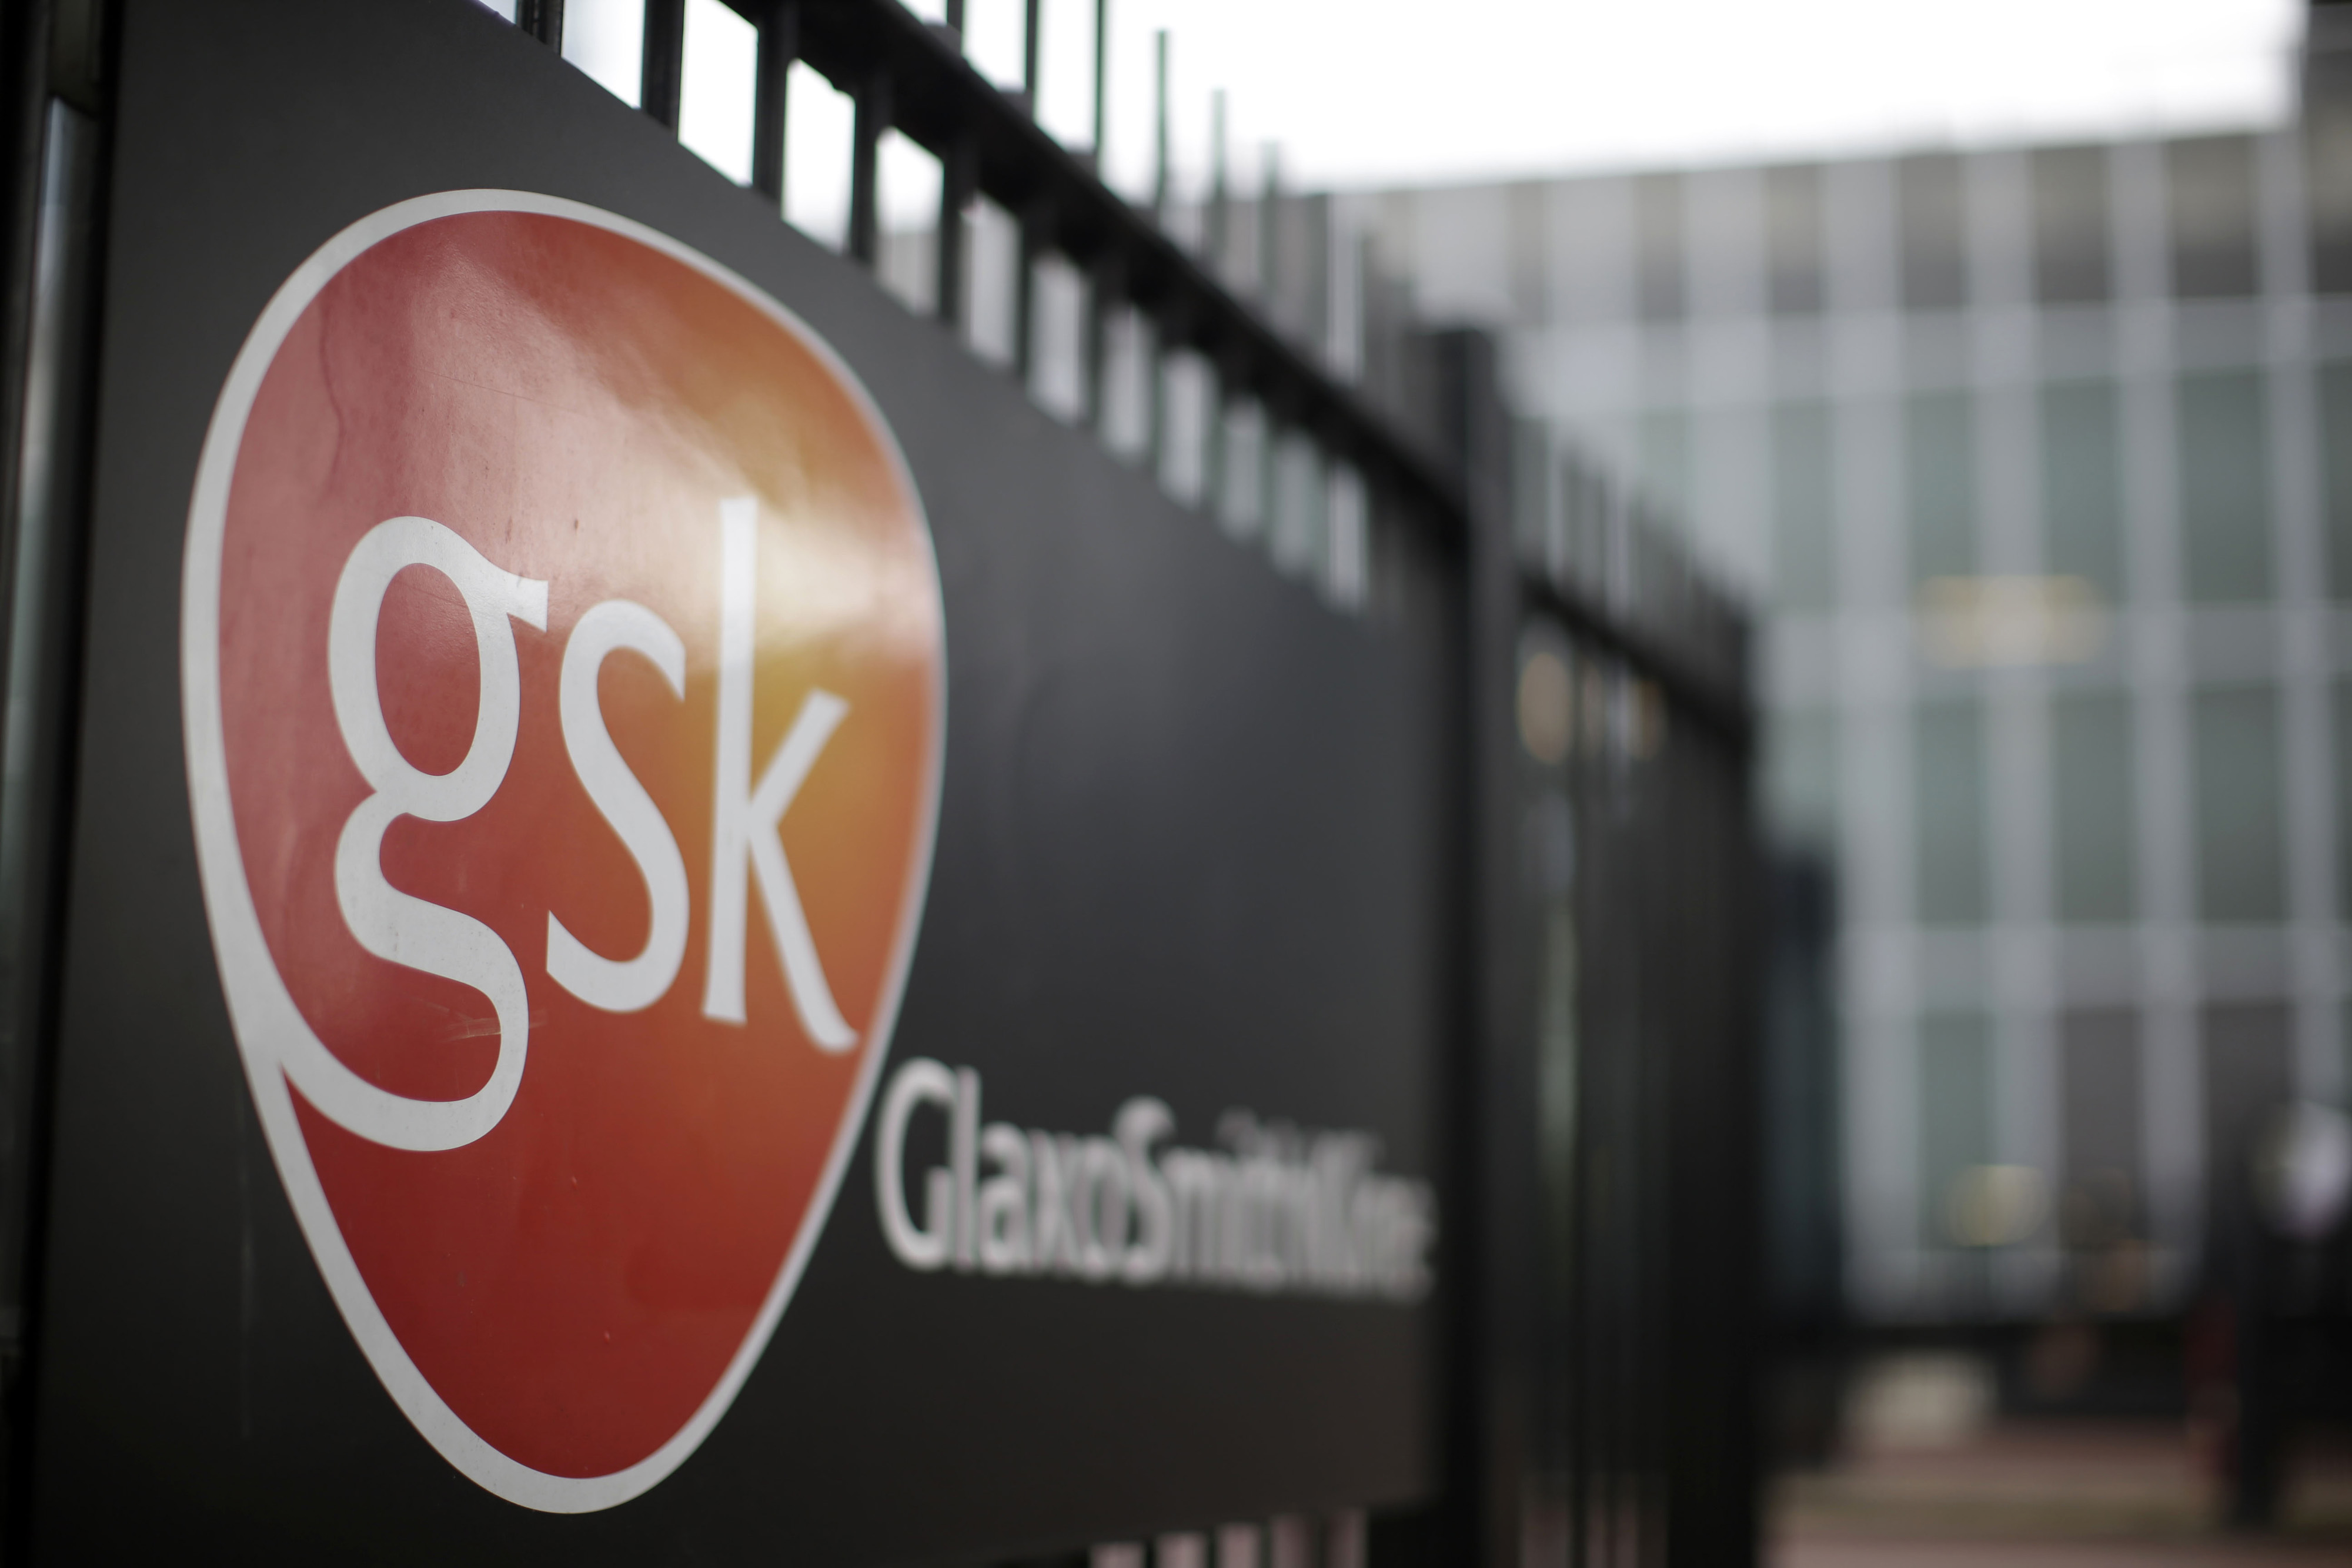 The logo of GlaxoSmithKline Plc sits on a sign outside the pharmaceutical company's headquarters in London, U.K., on Tuesday, April 22, 2014.